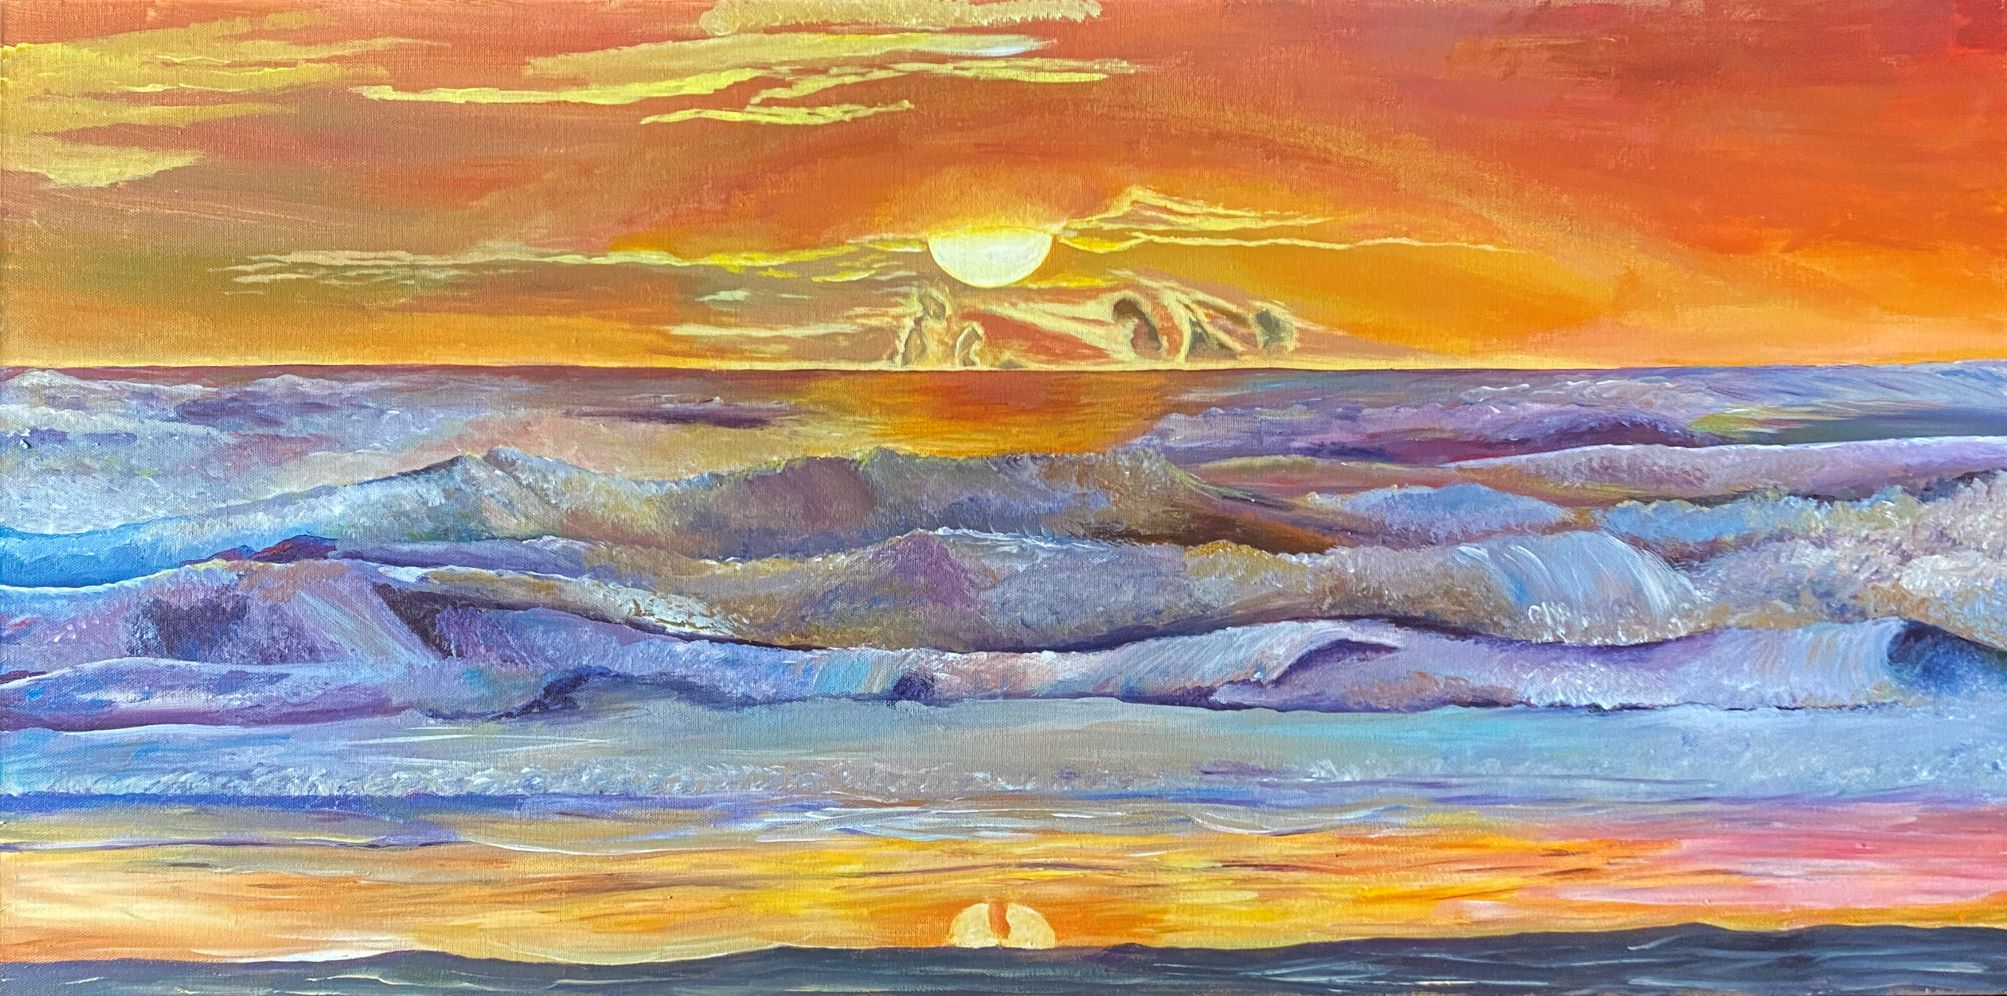 Crashing Thoughts – Giclée Print of sunset over west coast waves – from acrylic on canvas original via @chooicenz